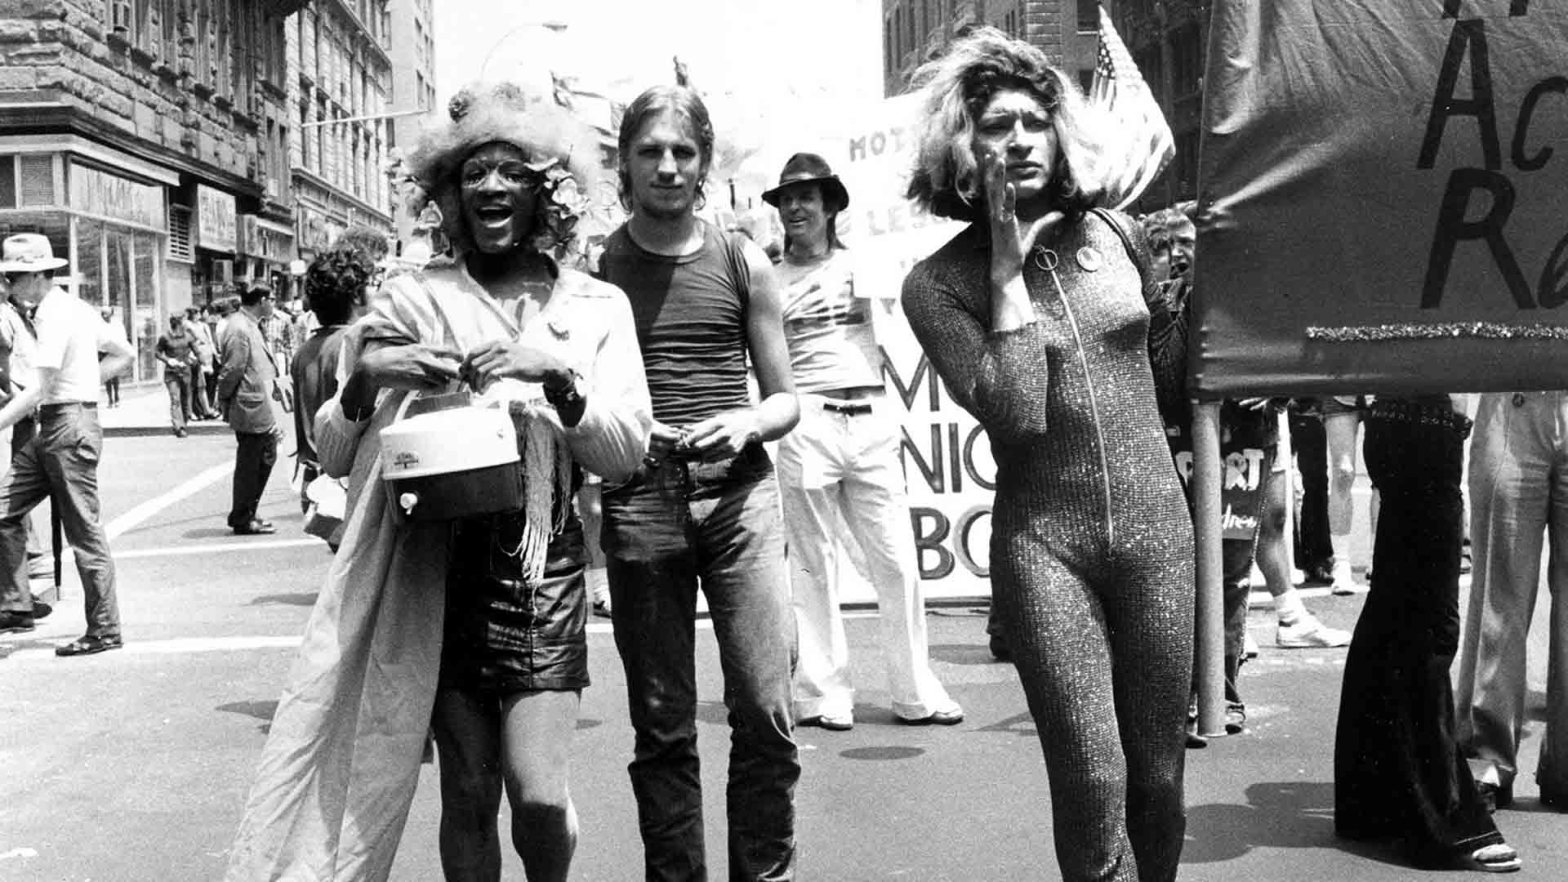 marsha johnson e sylvia rivera